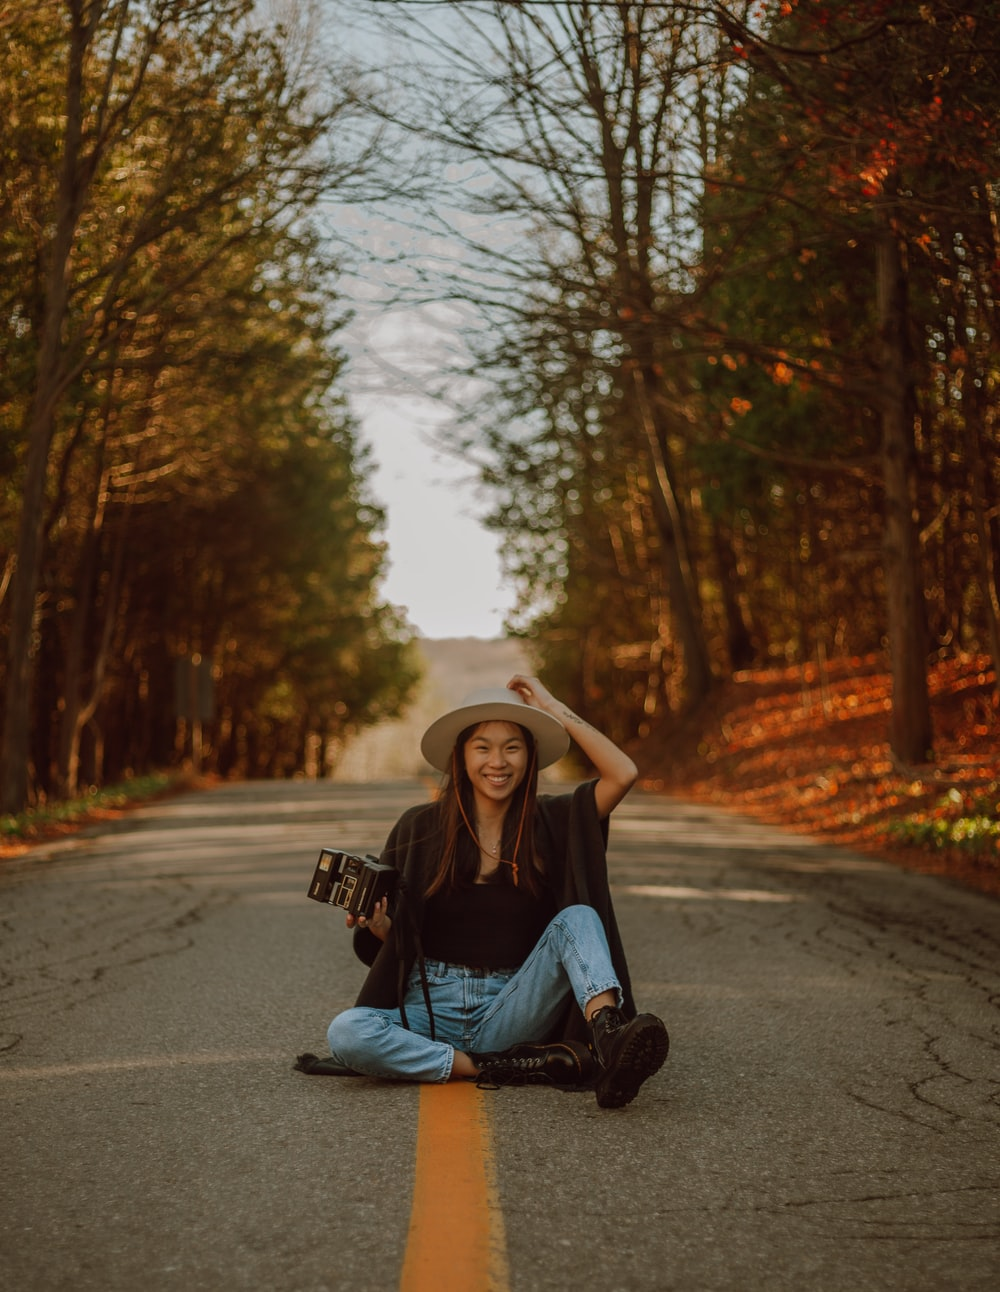 woman in black shirt and blue denim jeans sitting on road during daytime